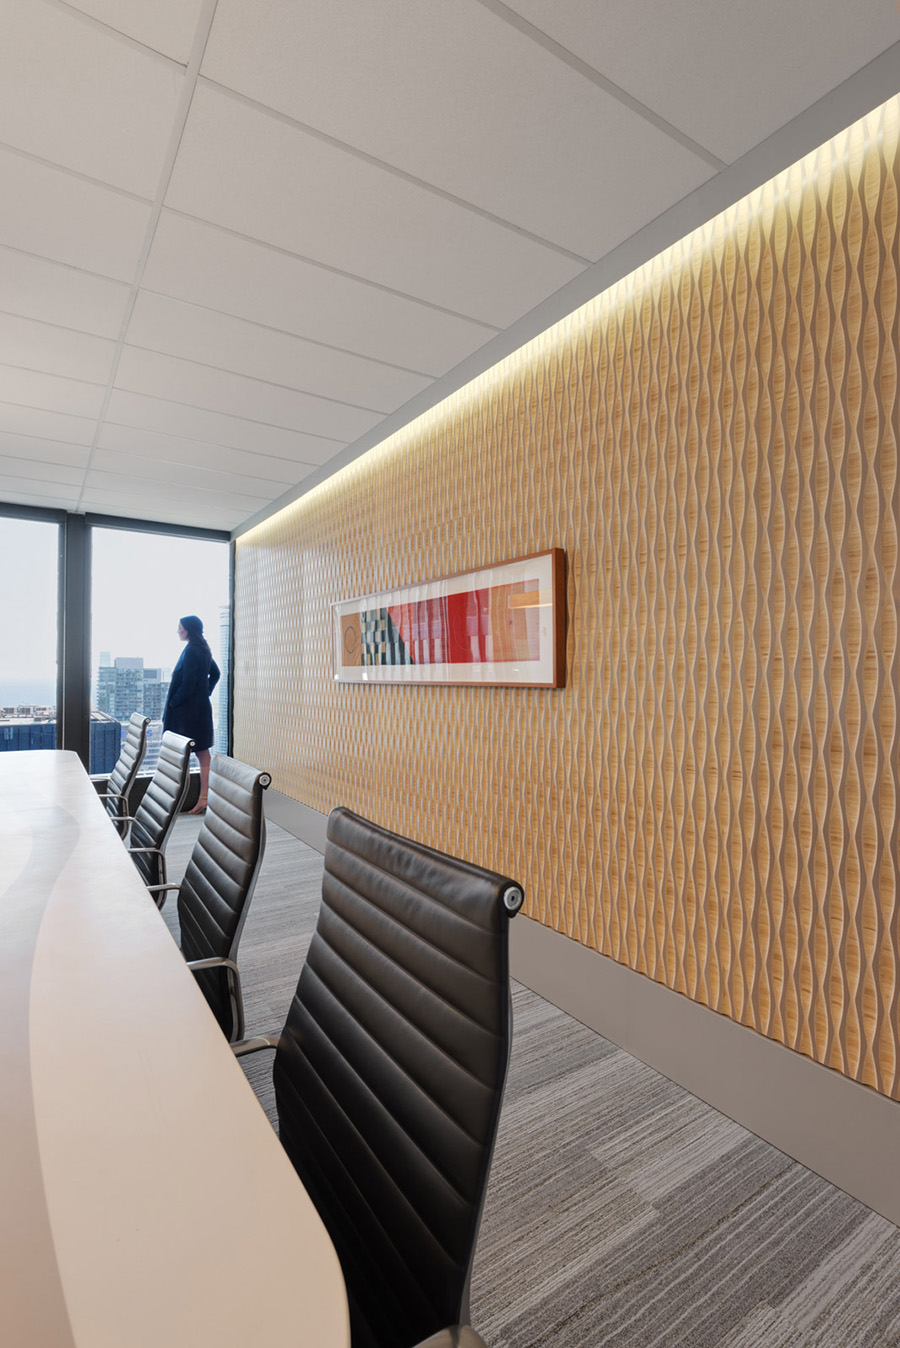 Modern office boardroom, with recessed lighting and textured accent wall